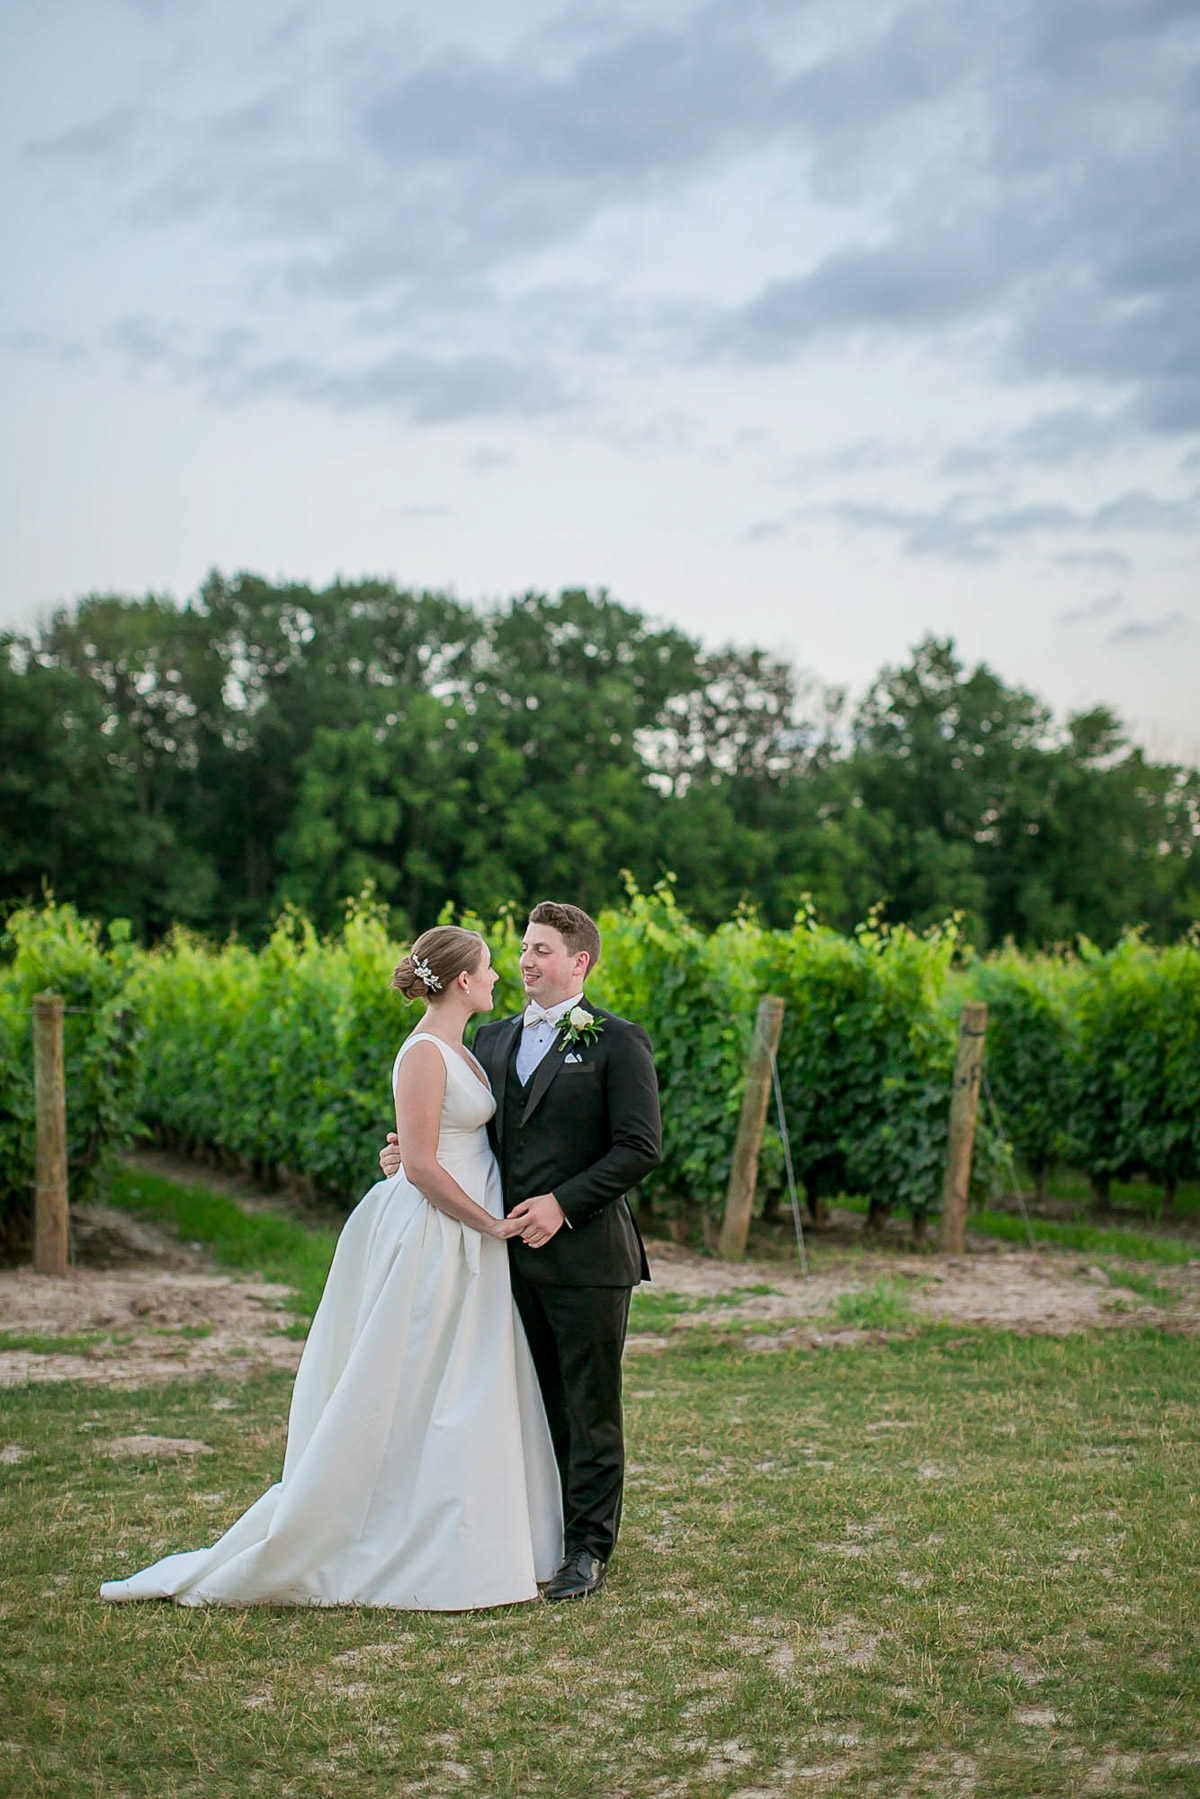 philosophy-studios-vineyard-bride-swish-list-chateau-des-charmes-niagara-on-the-lake-wedding-61.jpg